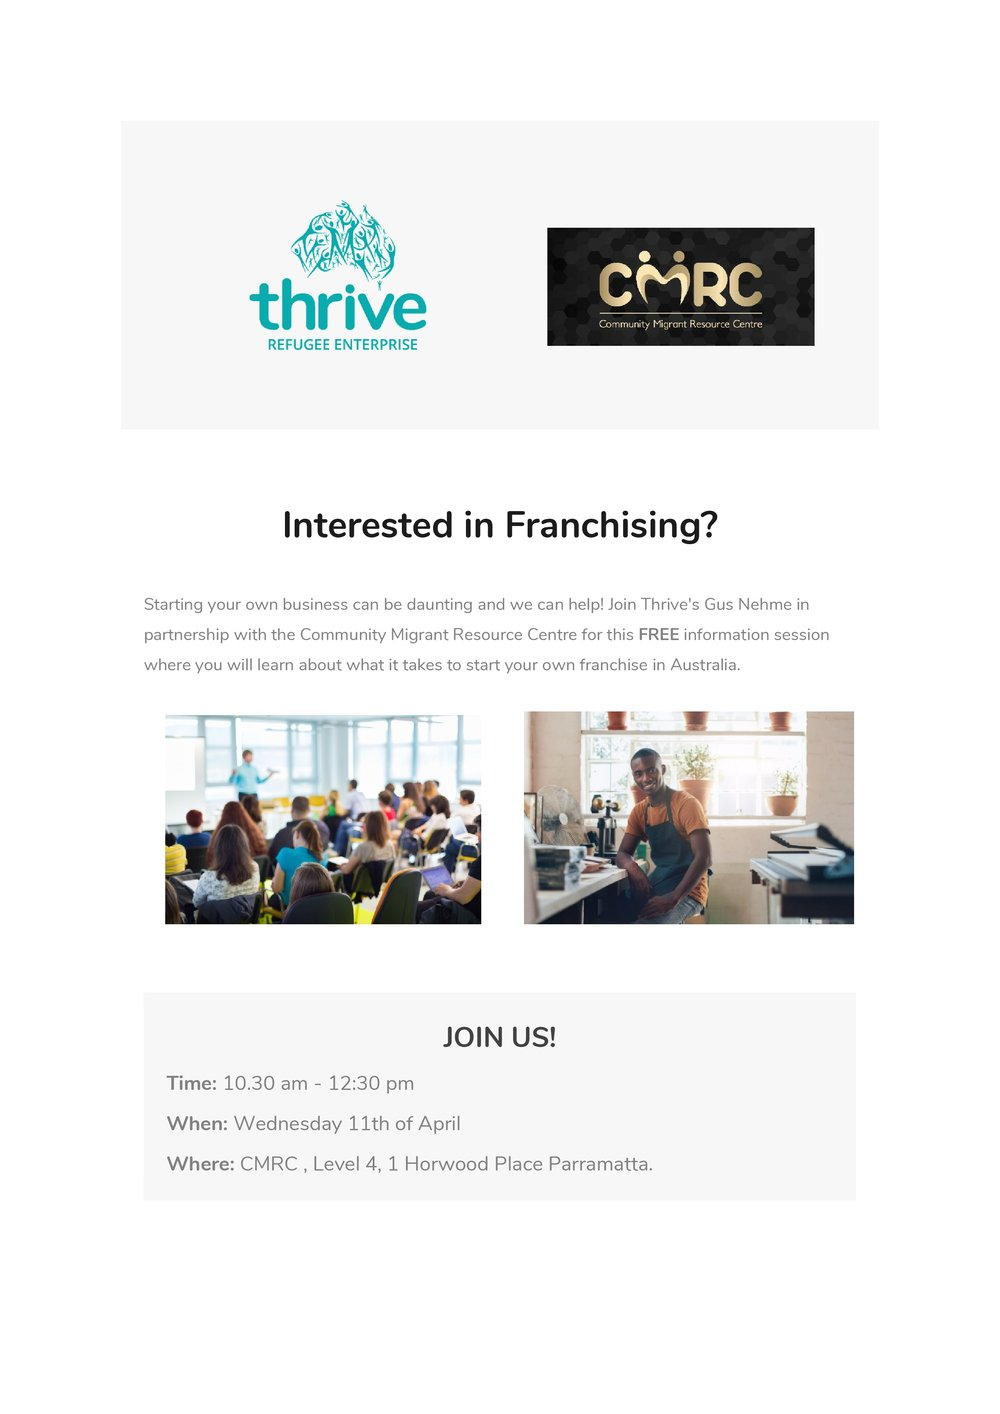 Interested in Franchising v3.jpg